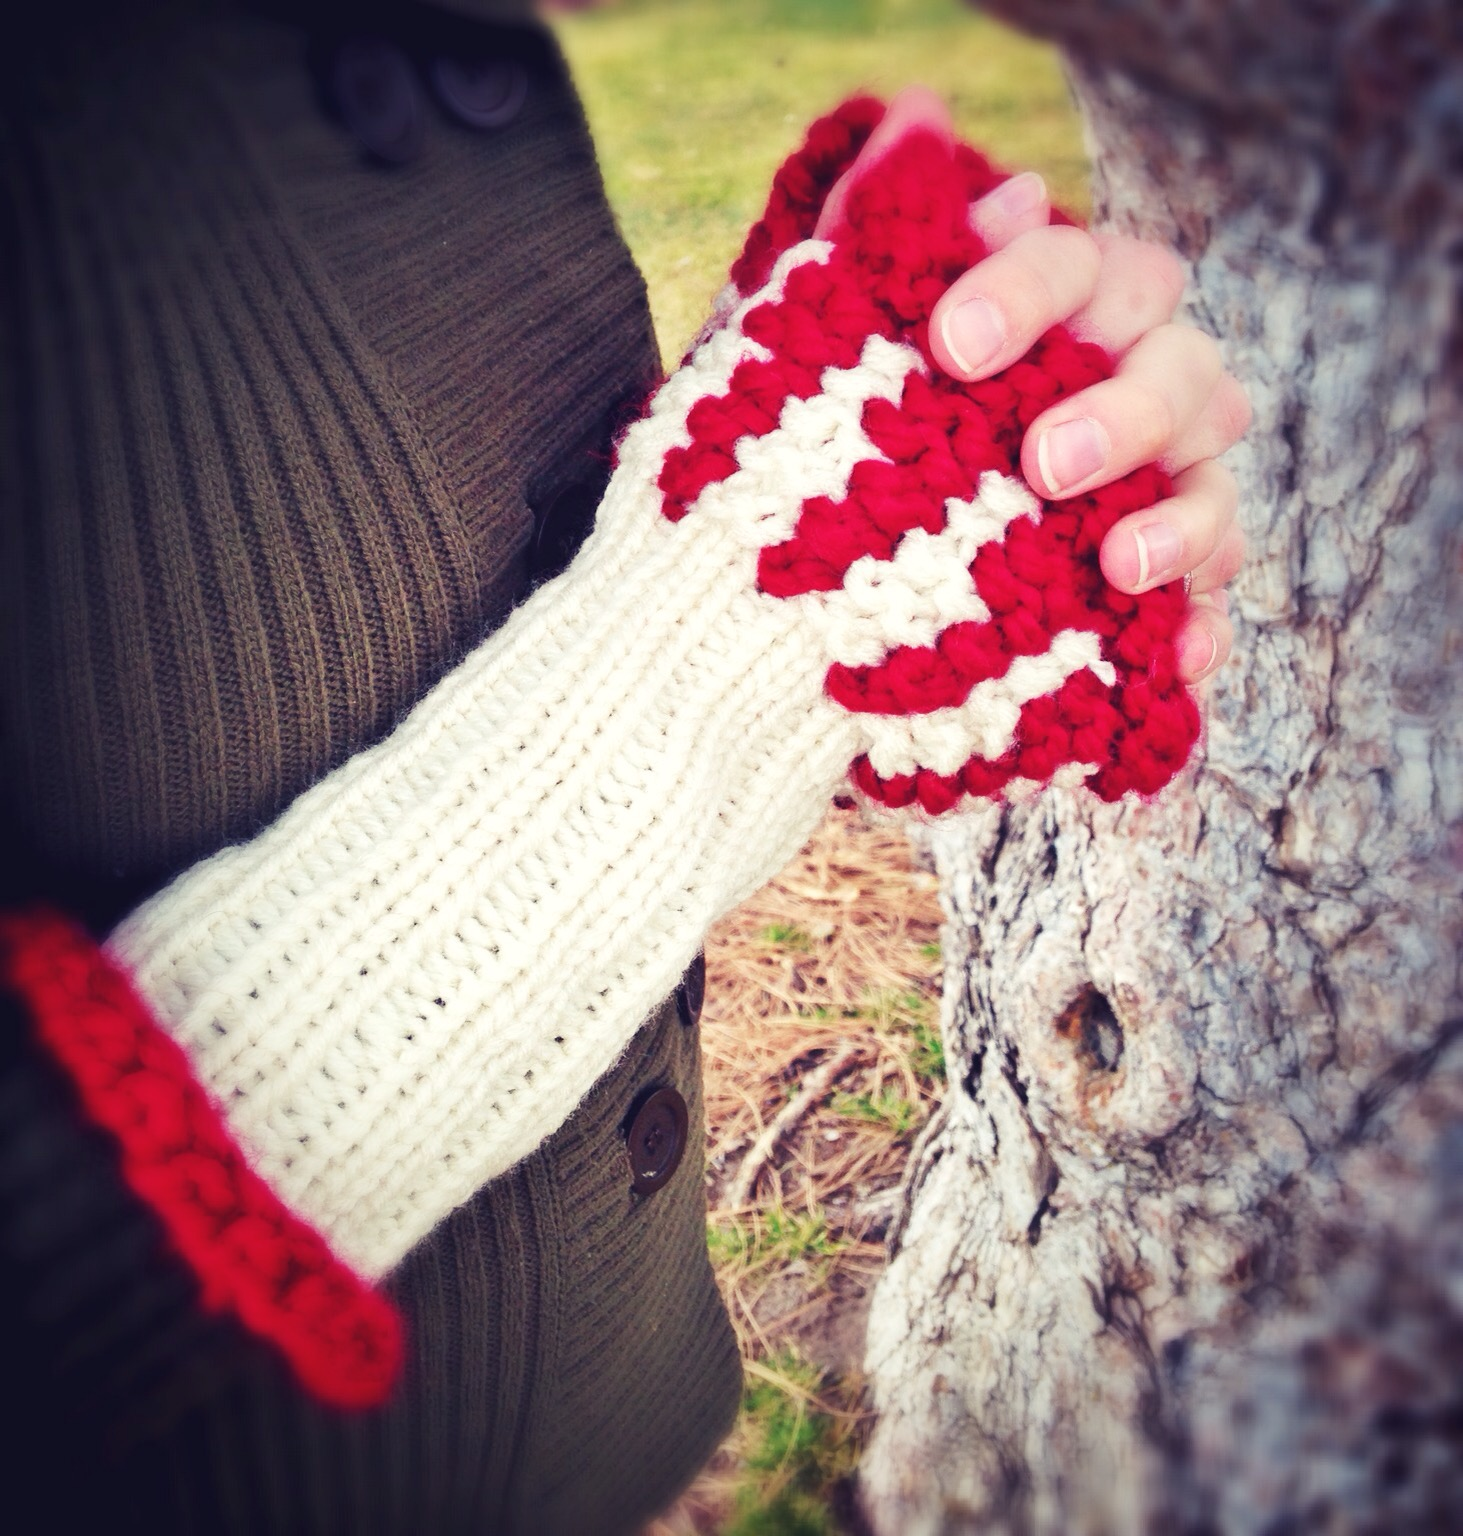 DIY: 25 Wearable Geek Projects You Can Knit or Crochet | Geek and Sundry